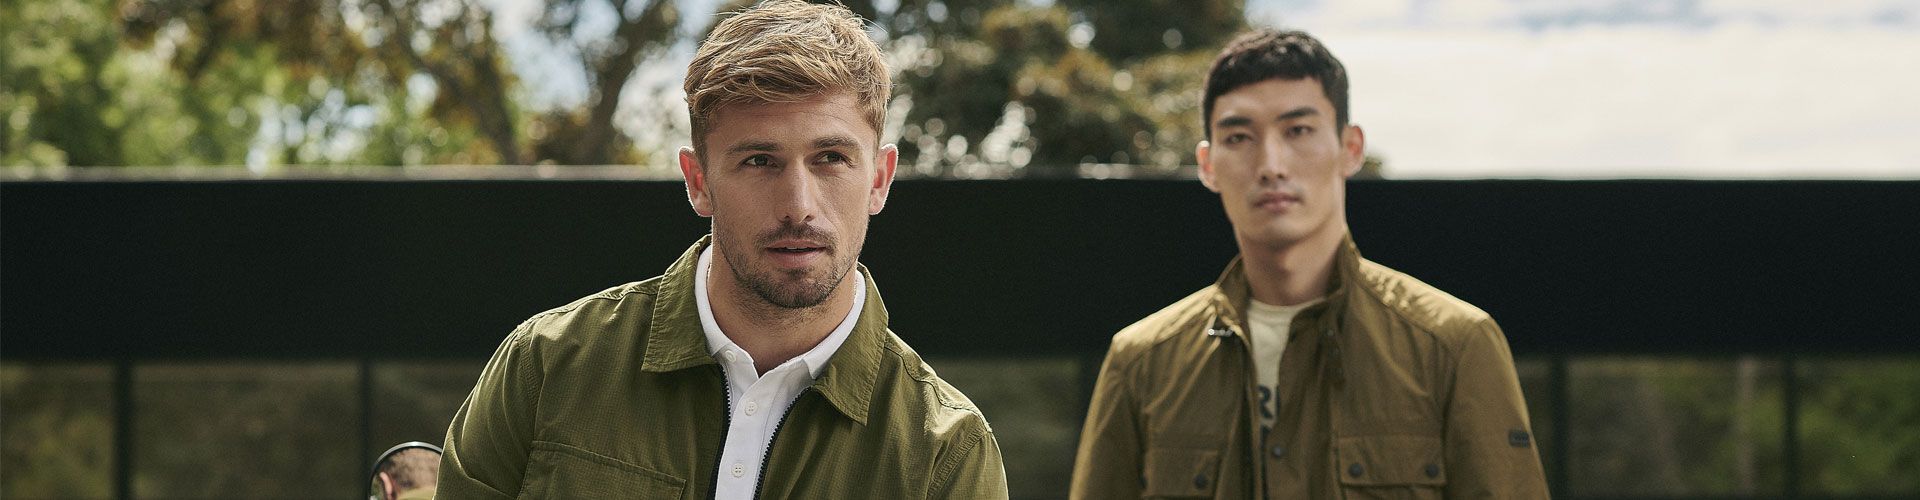 The Barbour International SS21 Pre Men's Collection, styled on model